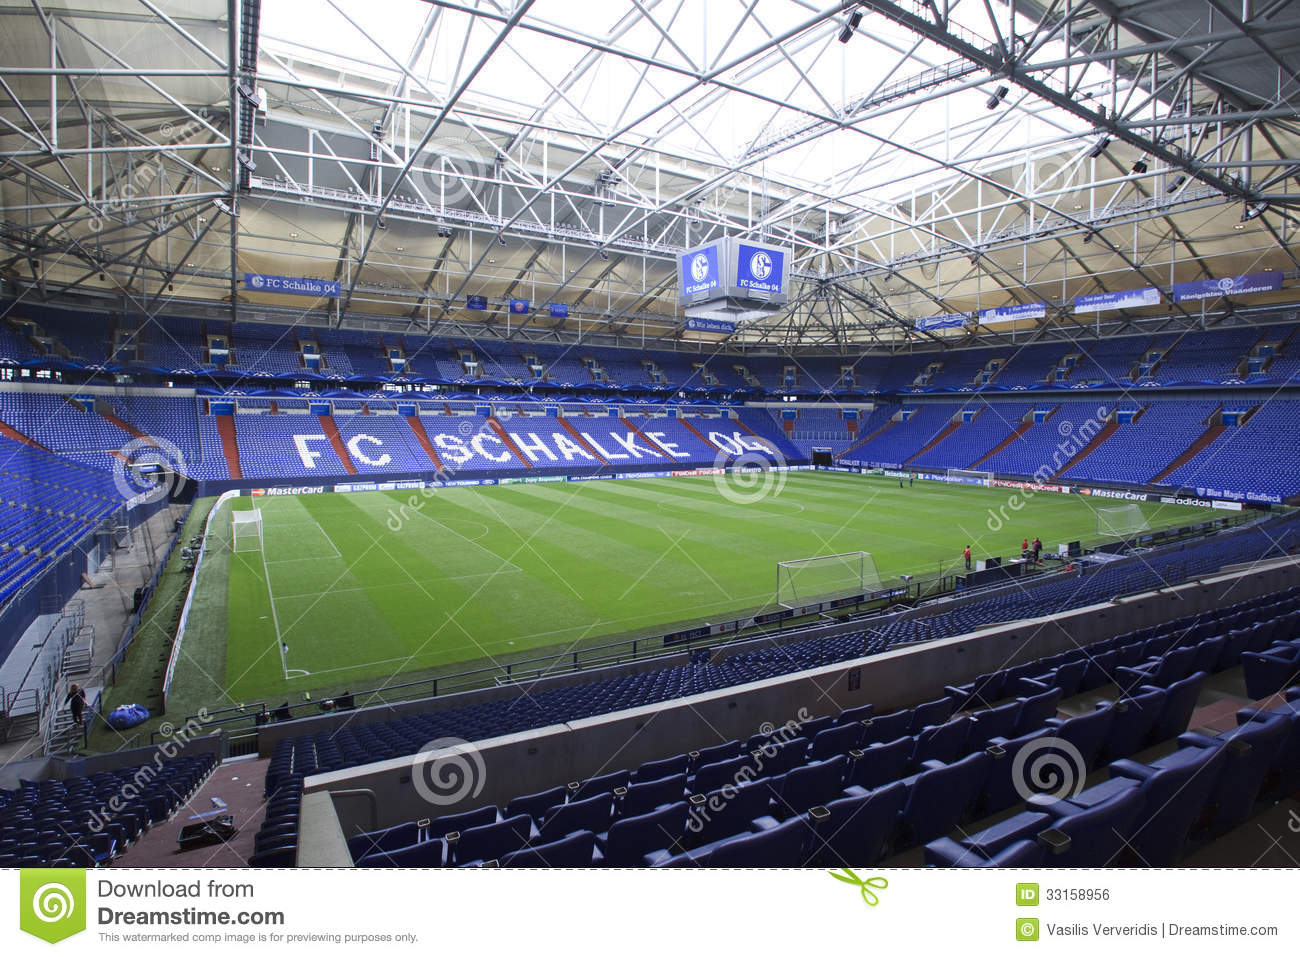 Gelsenkirchen Germany  city images : GELSENKIRCHEN, GERMANY AUG 21: Interior view of Veltins Arena on Aug ...